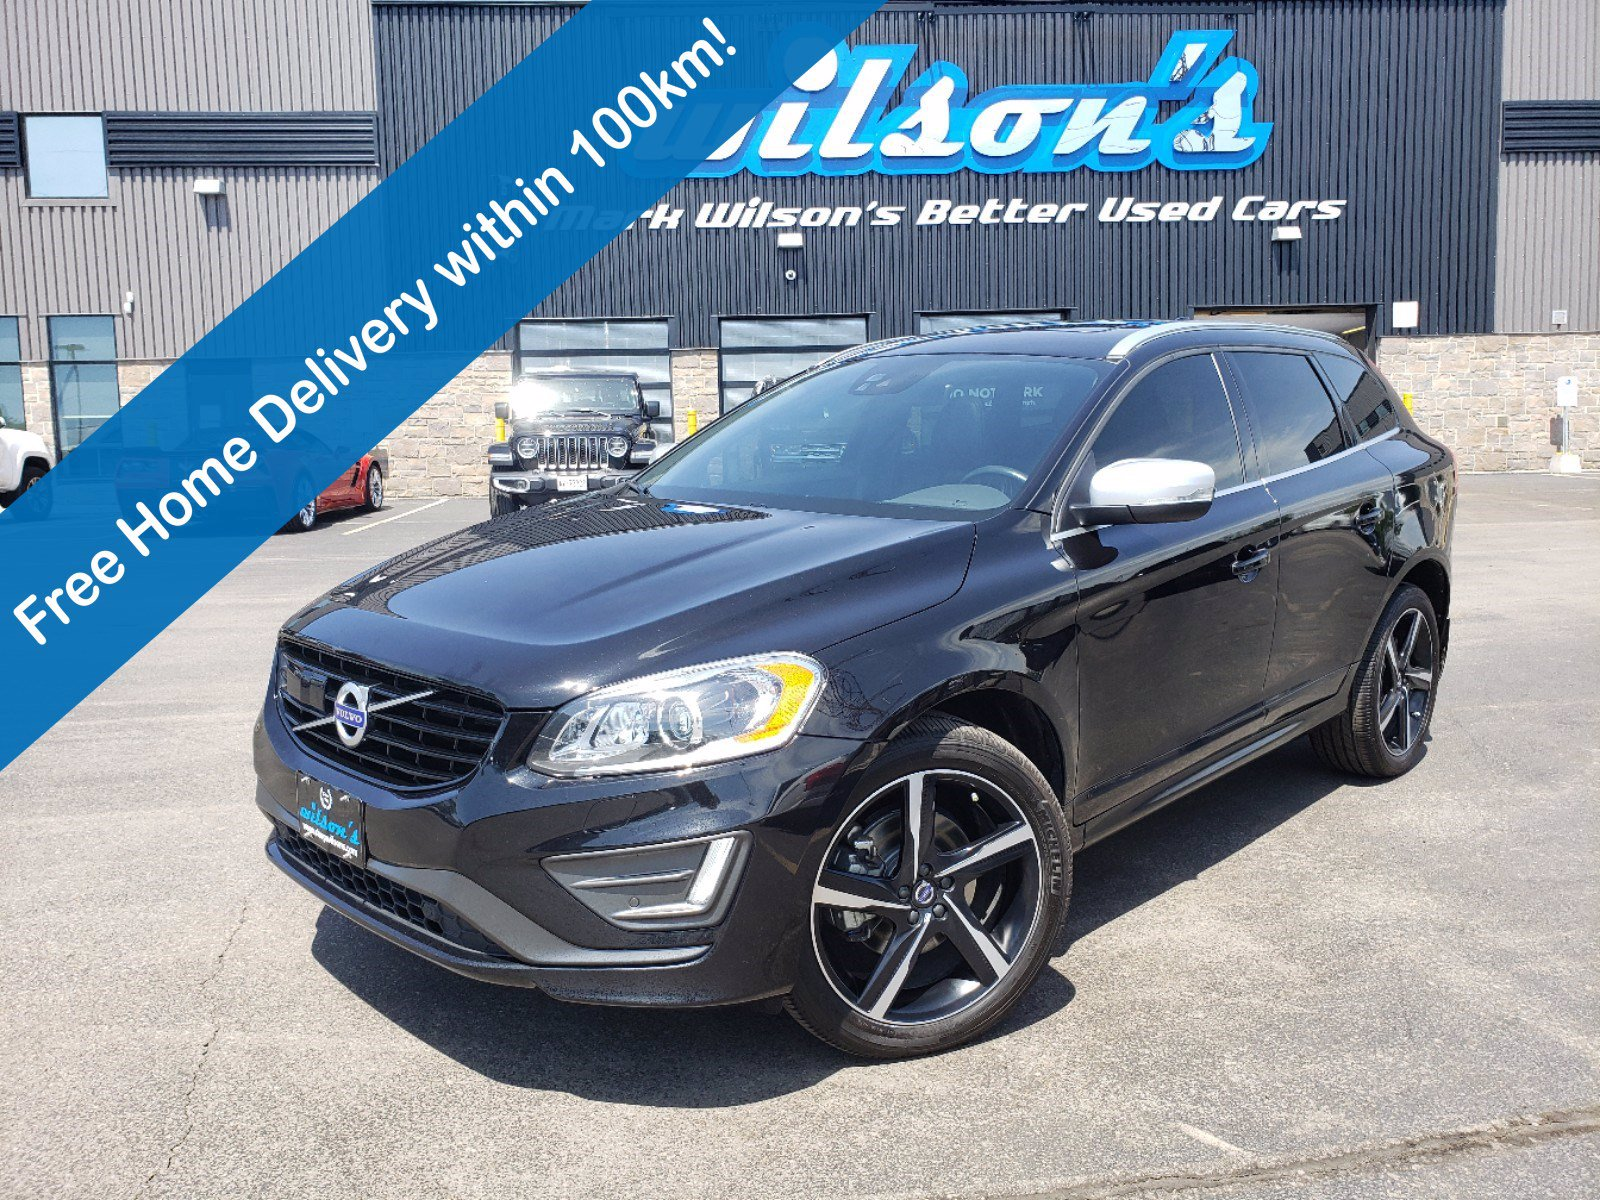 Certified Pre-Owned 2016 Volvo XC60 T6 R-Design AWD, Navigation, Sunroof, Leather, Technology Package, Keyless Drive, Alloys & More!